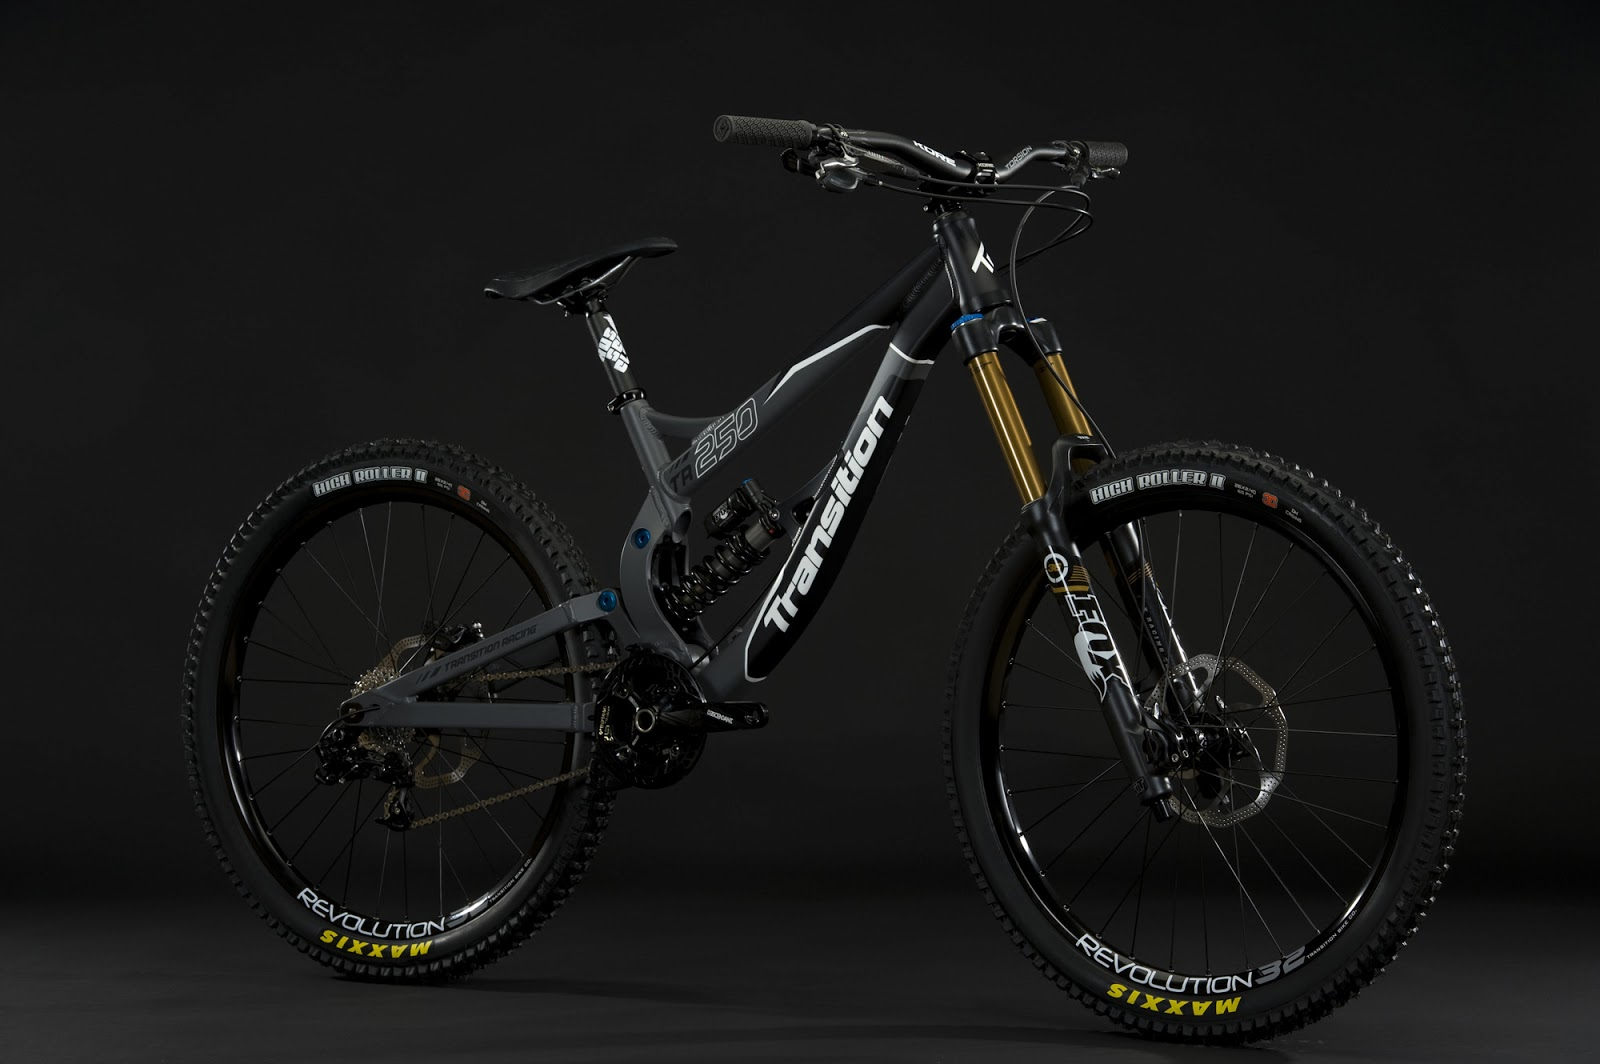 8f3d8581395 Introducing Transition Bikes at Hyland Cyclery!